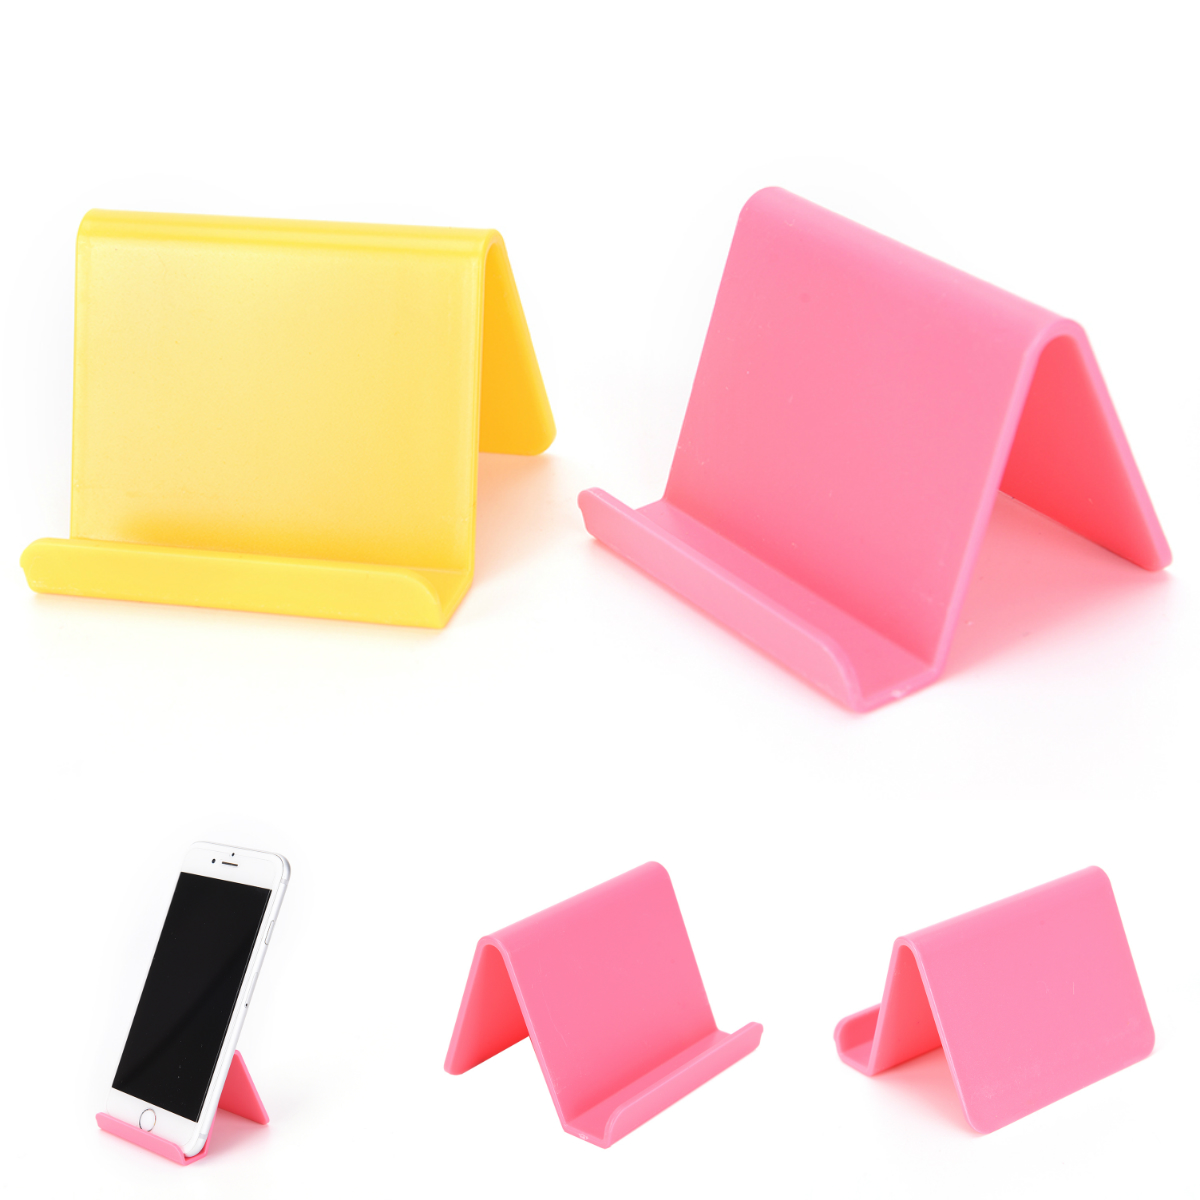 Universal Desktop Cell Mobile Phone Stand Candy Color Support For Smartphone Tablet Flexible Folding Desk Bracket Holder